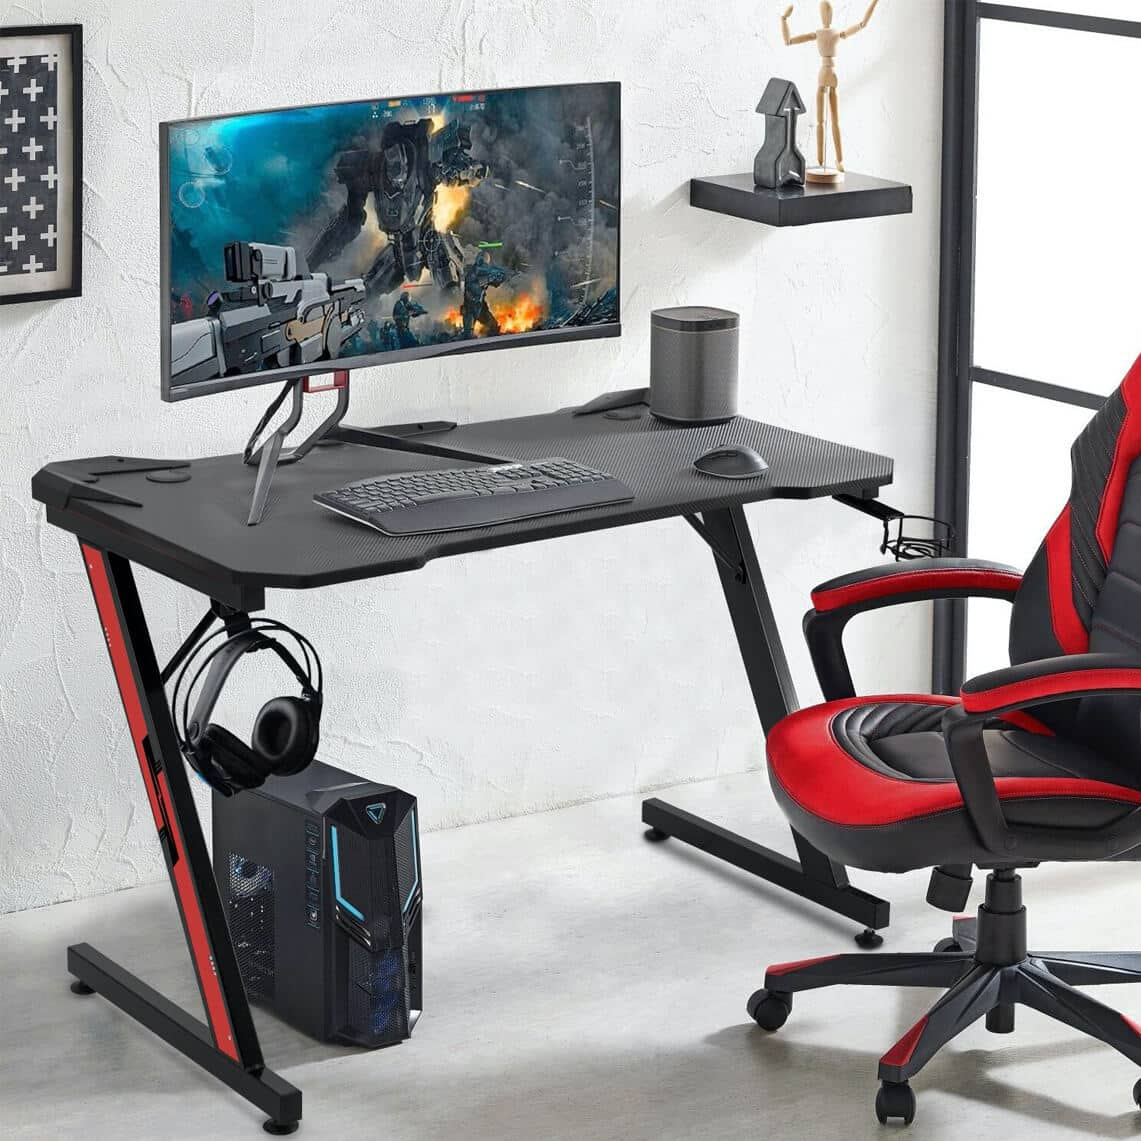 Symple Stuff Sinead Ergonomic Gaming Desk